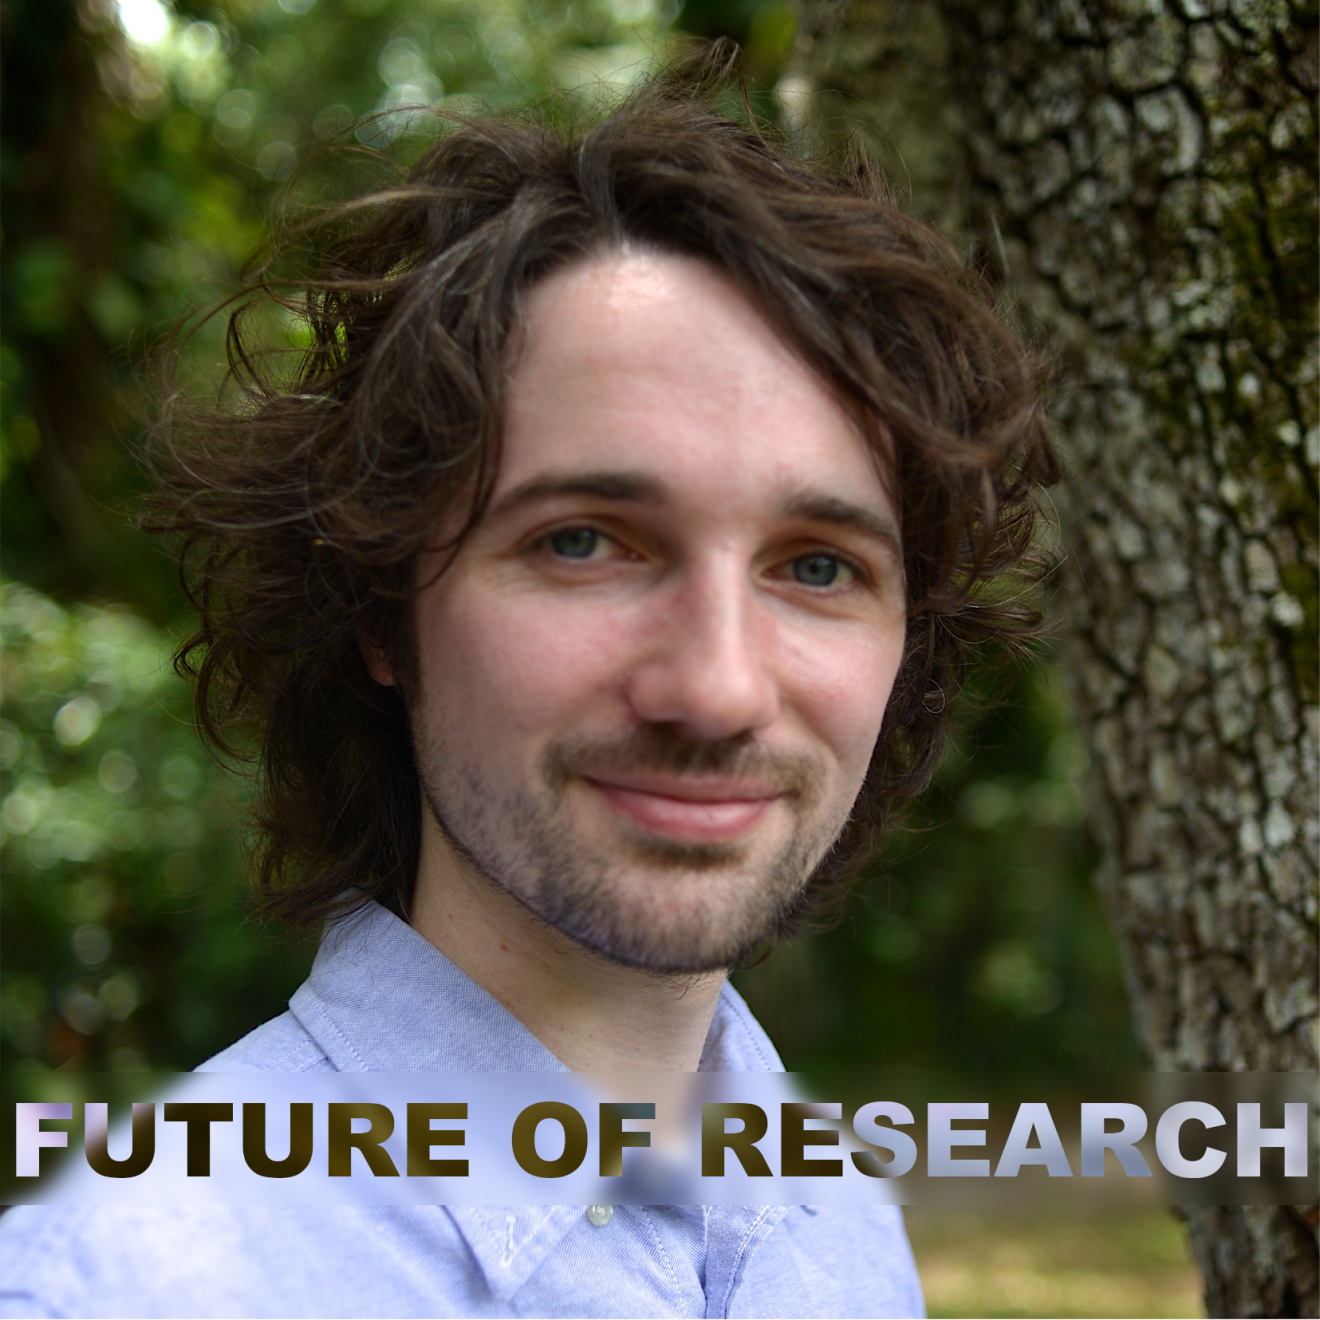 27 Precarious Postdocs. A Future for Research? - with Gary McDowell